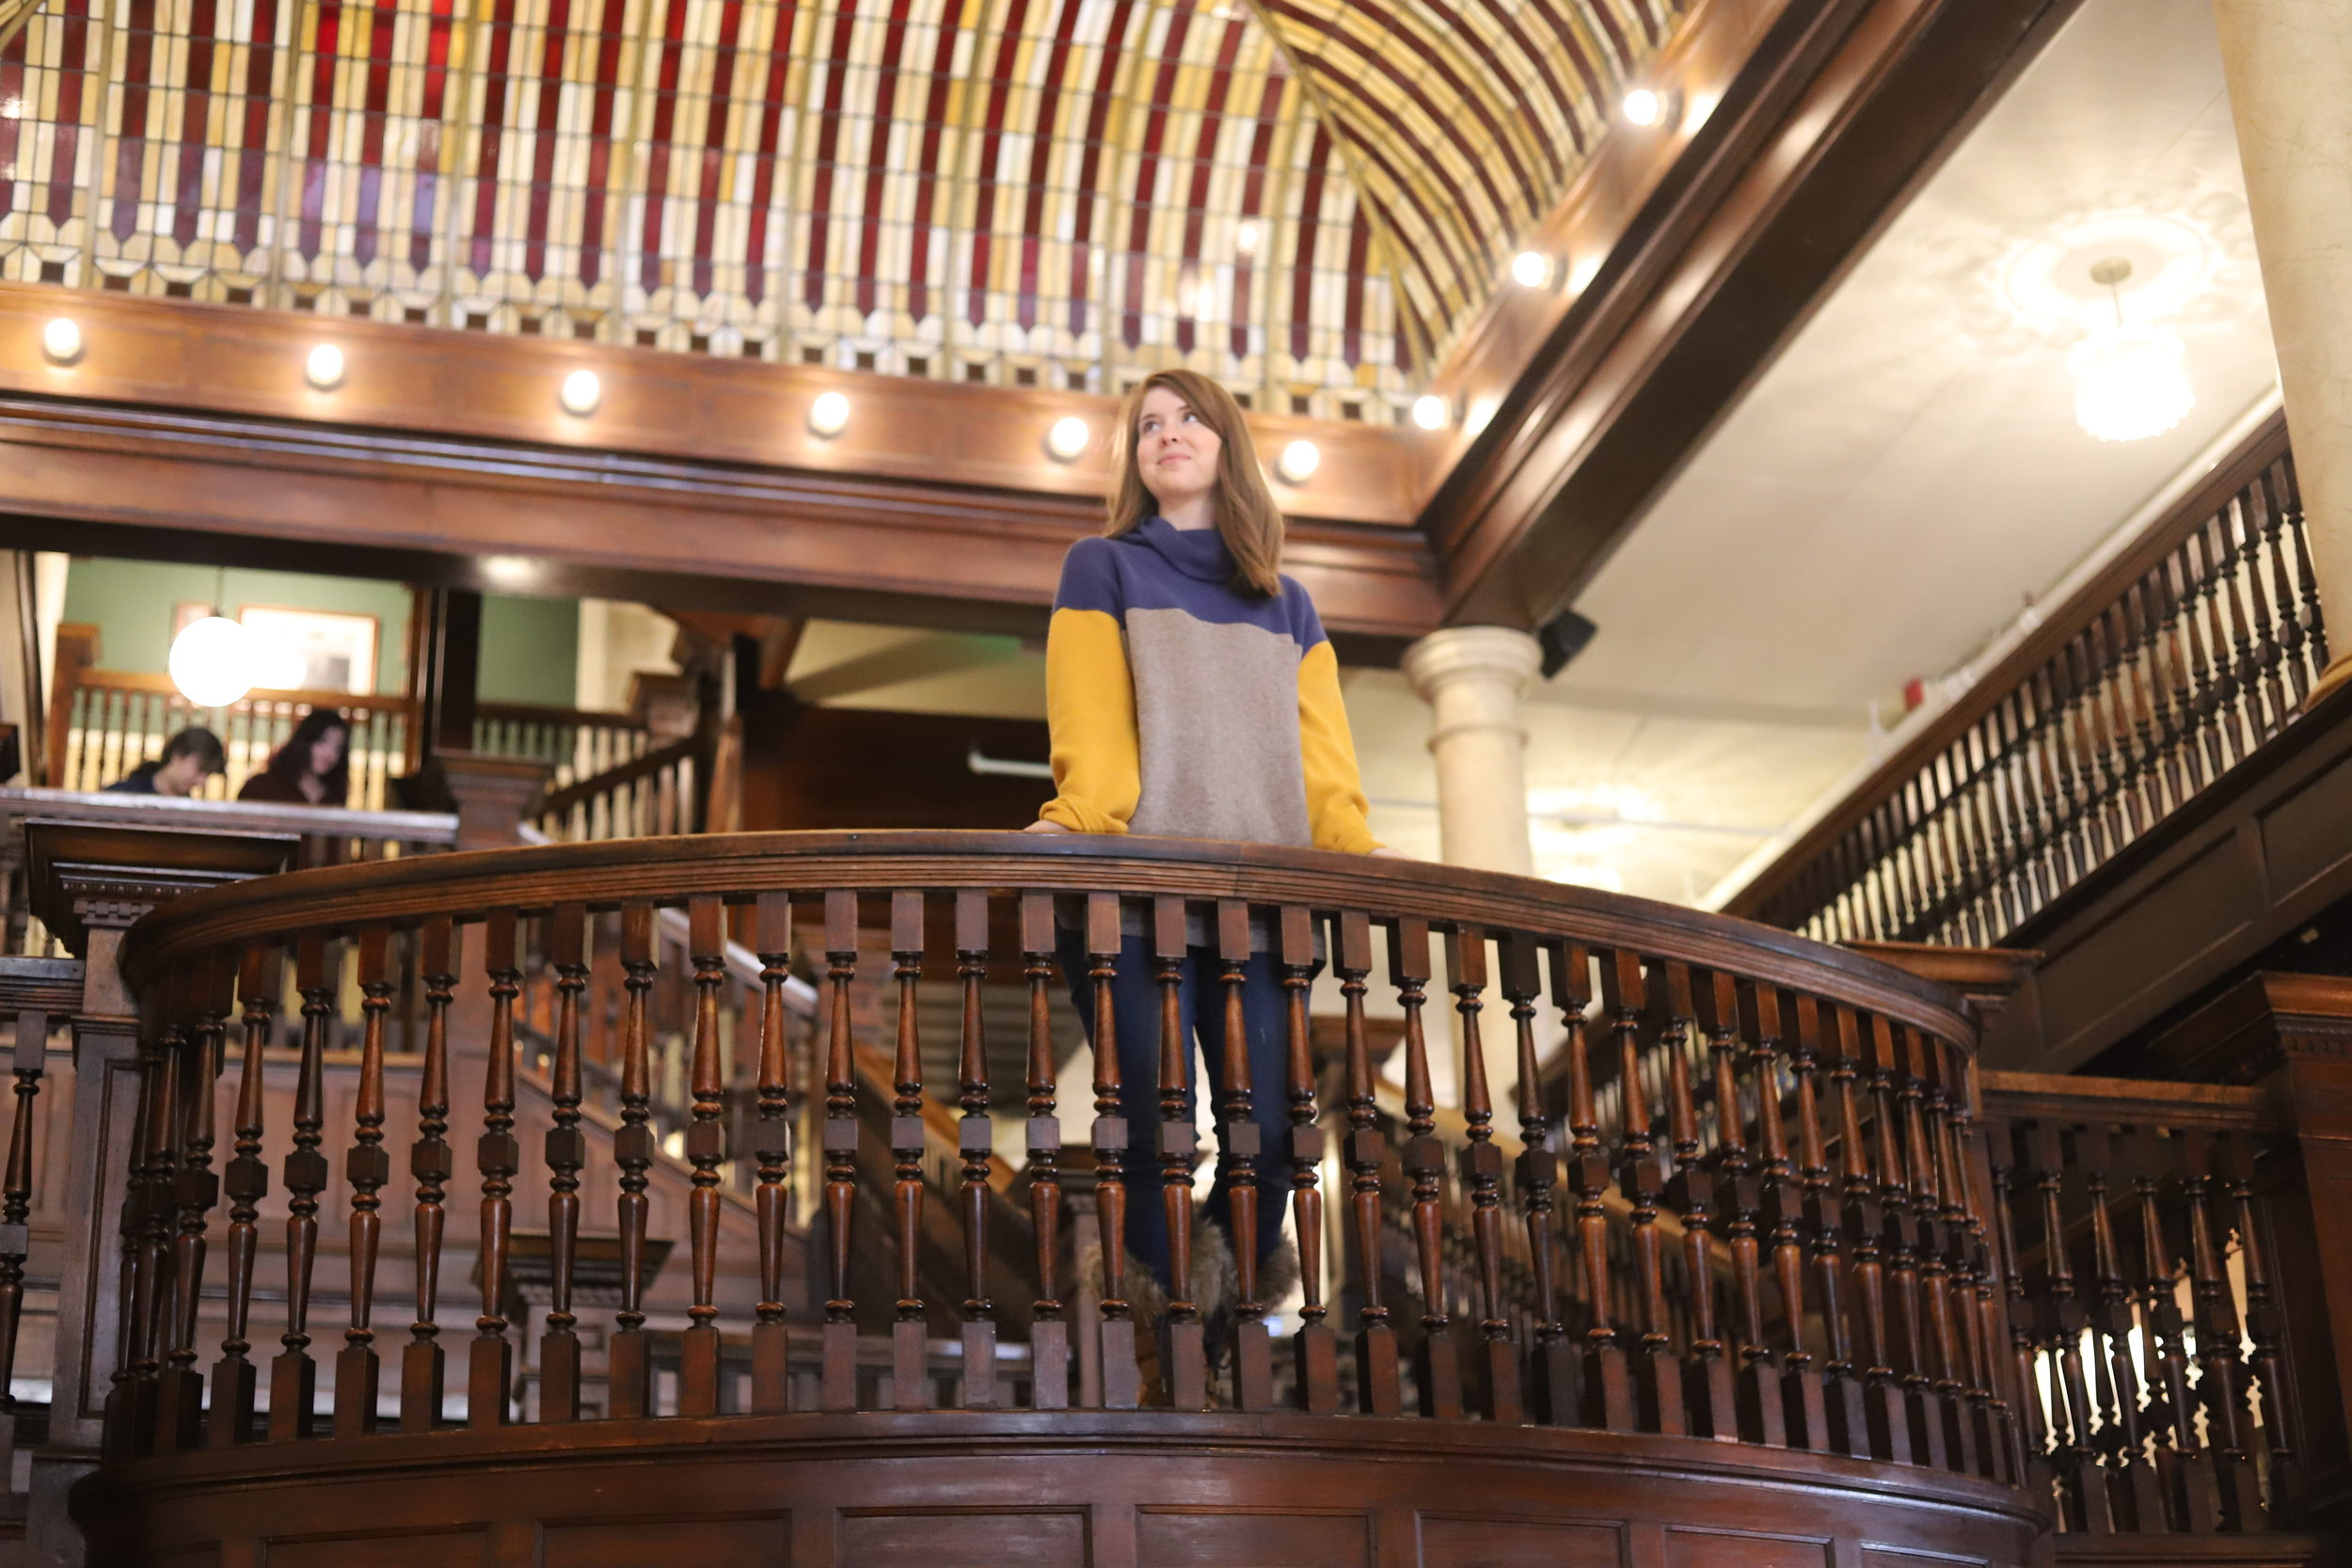 where to stay in boulder colorado, hotel boulderado, historic hotels, national landmark, downtown boulder, hotels near pearl street mall